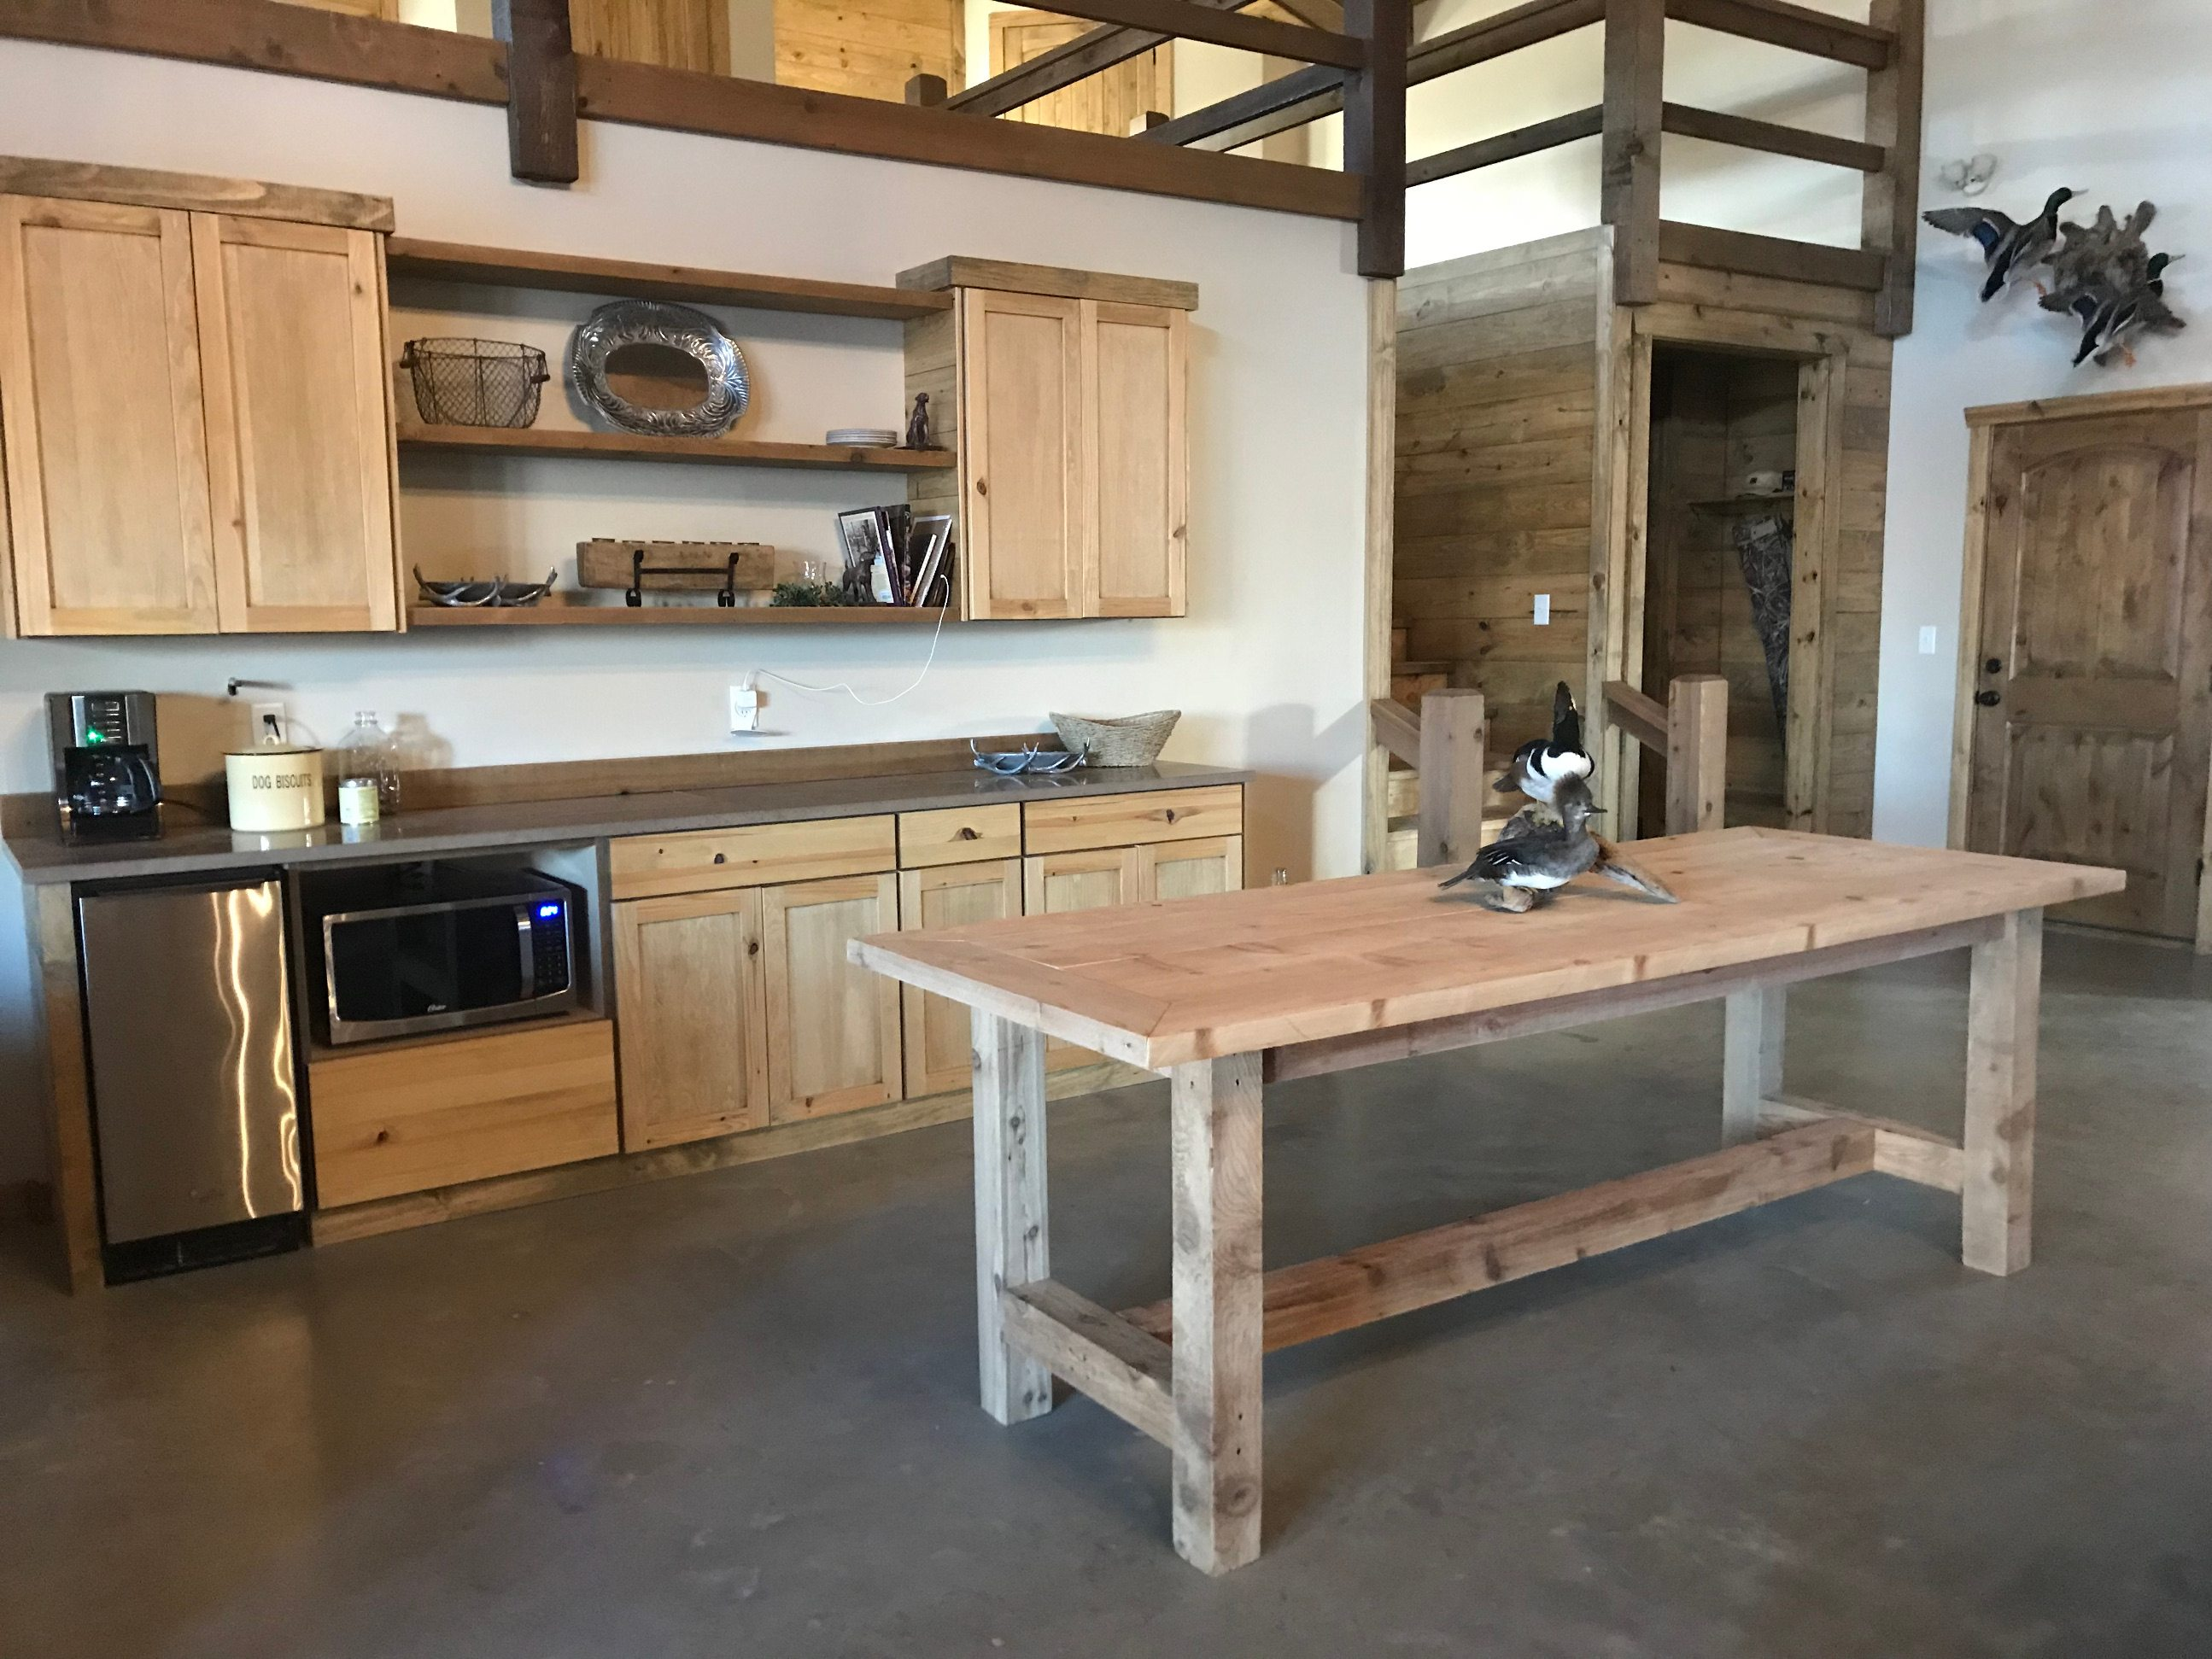 Rustic lodge kitchen cabinets